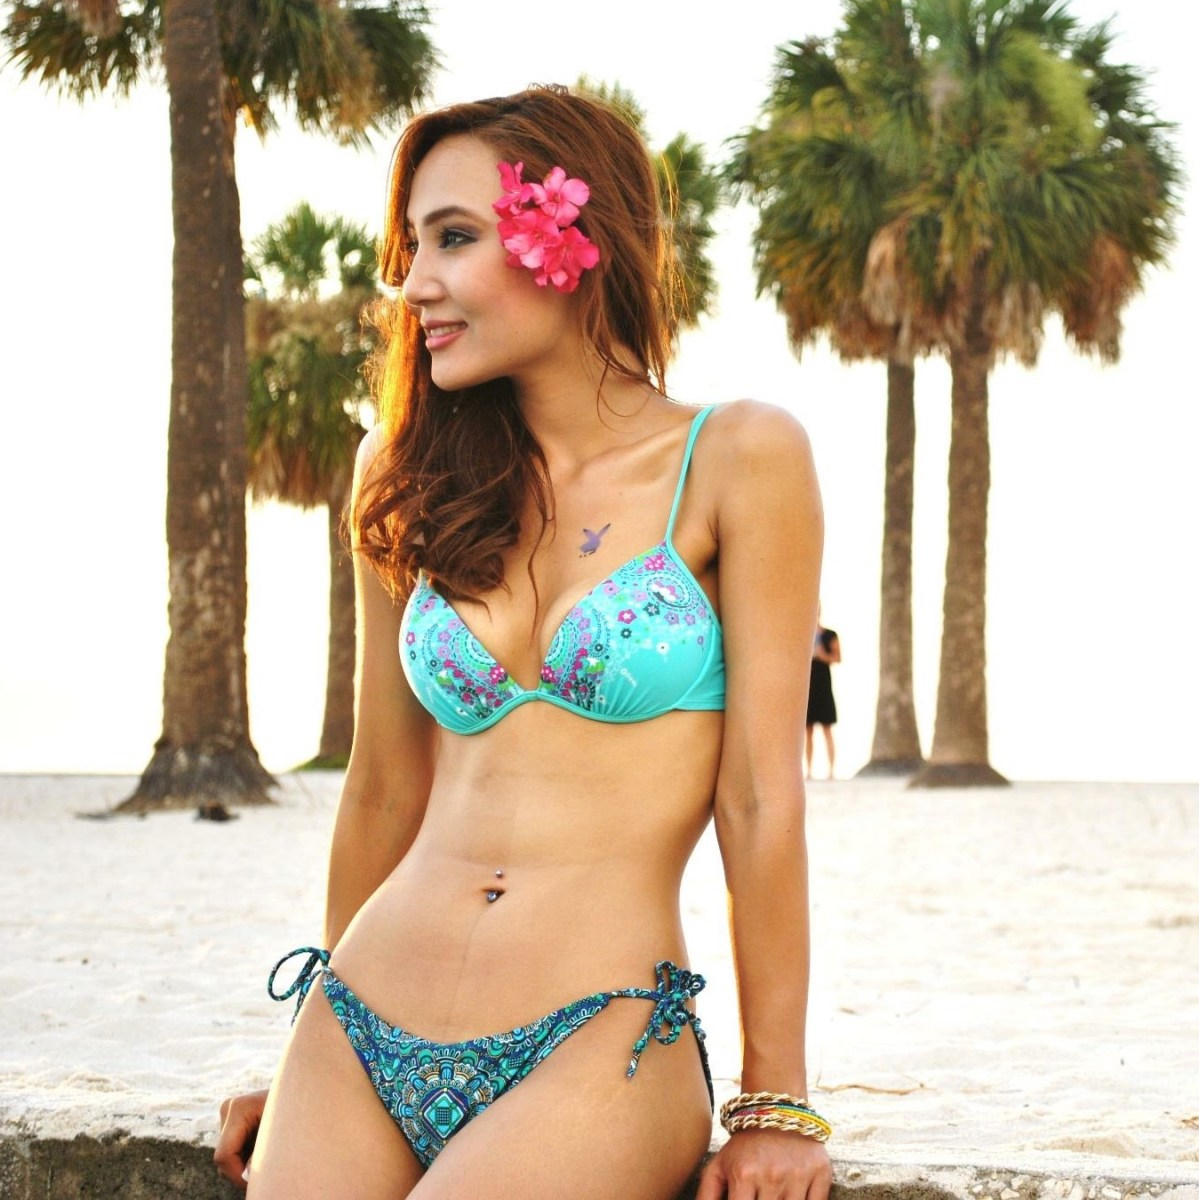 Sumi Moktan bikini avatar in Veitnam, Miss Tamang 2012 and Jhyanakuti actress